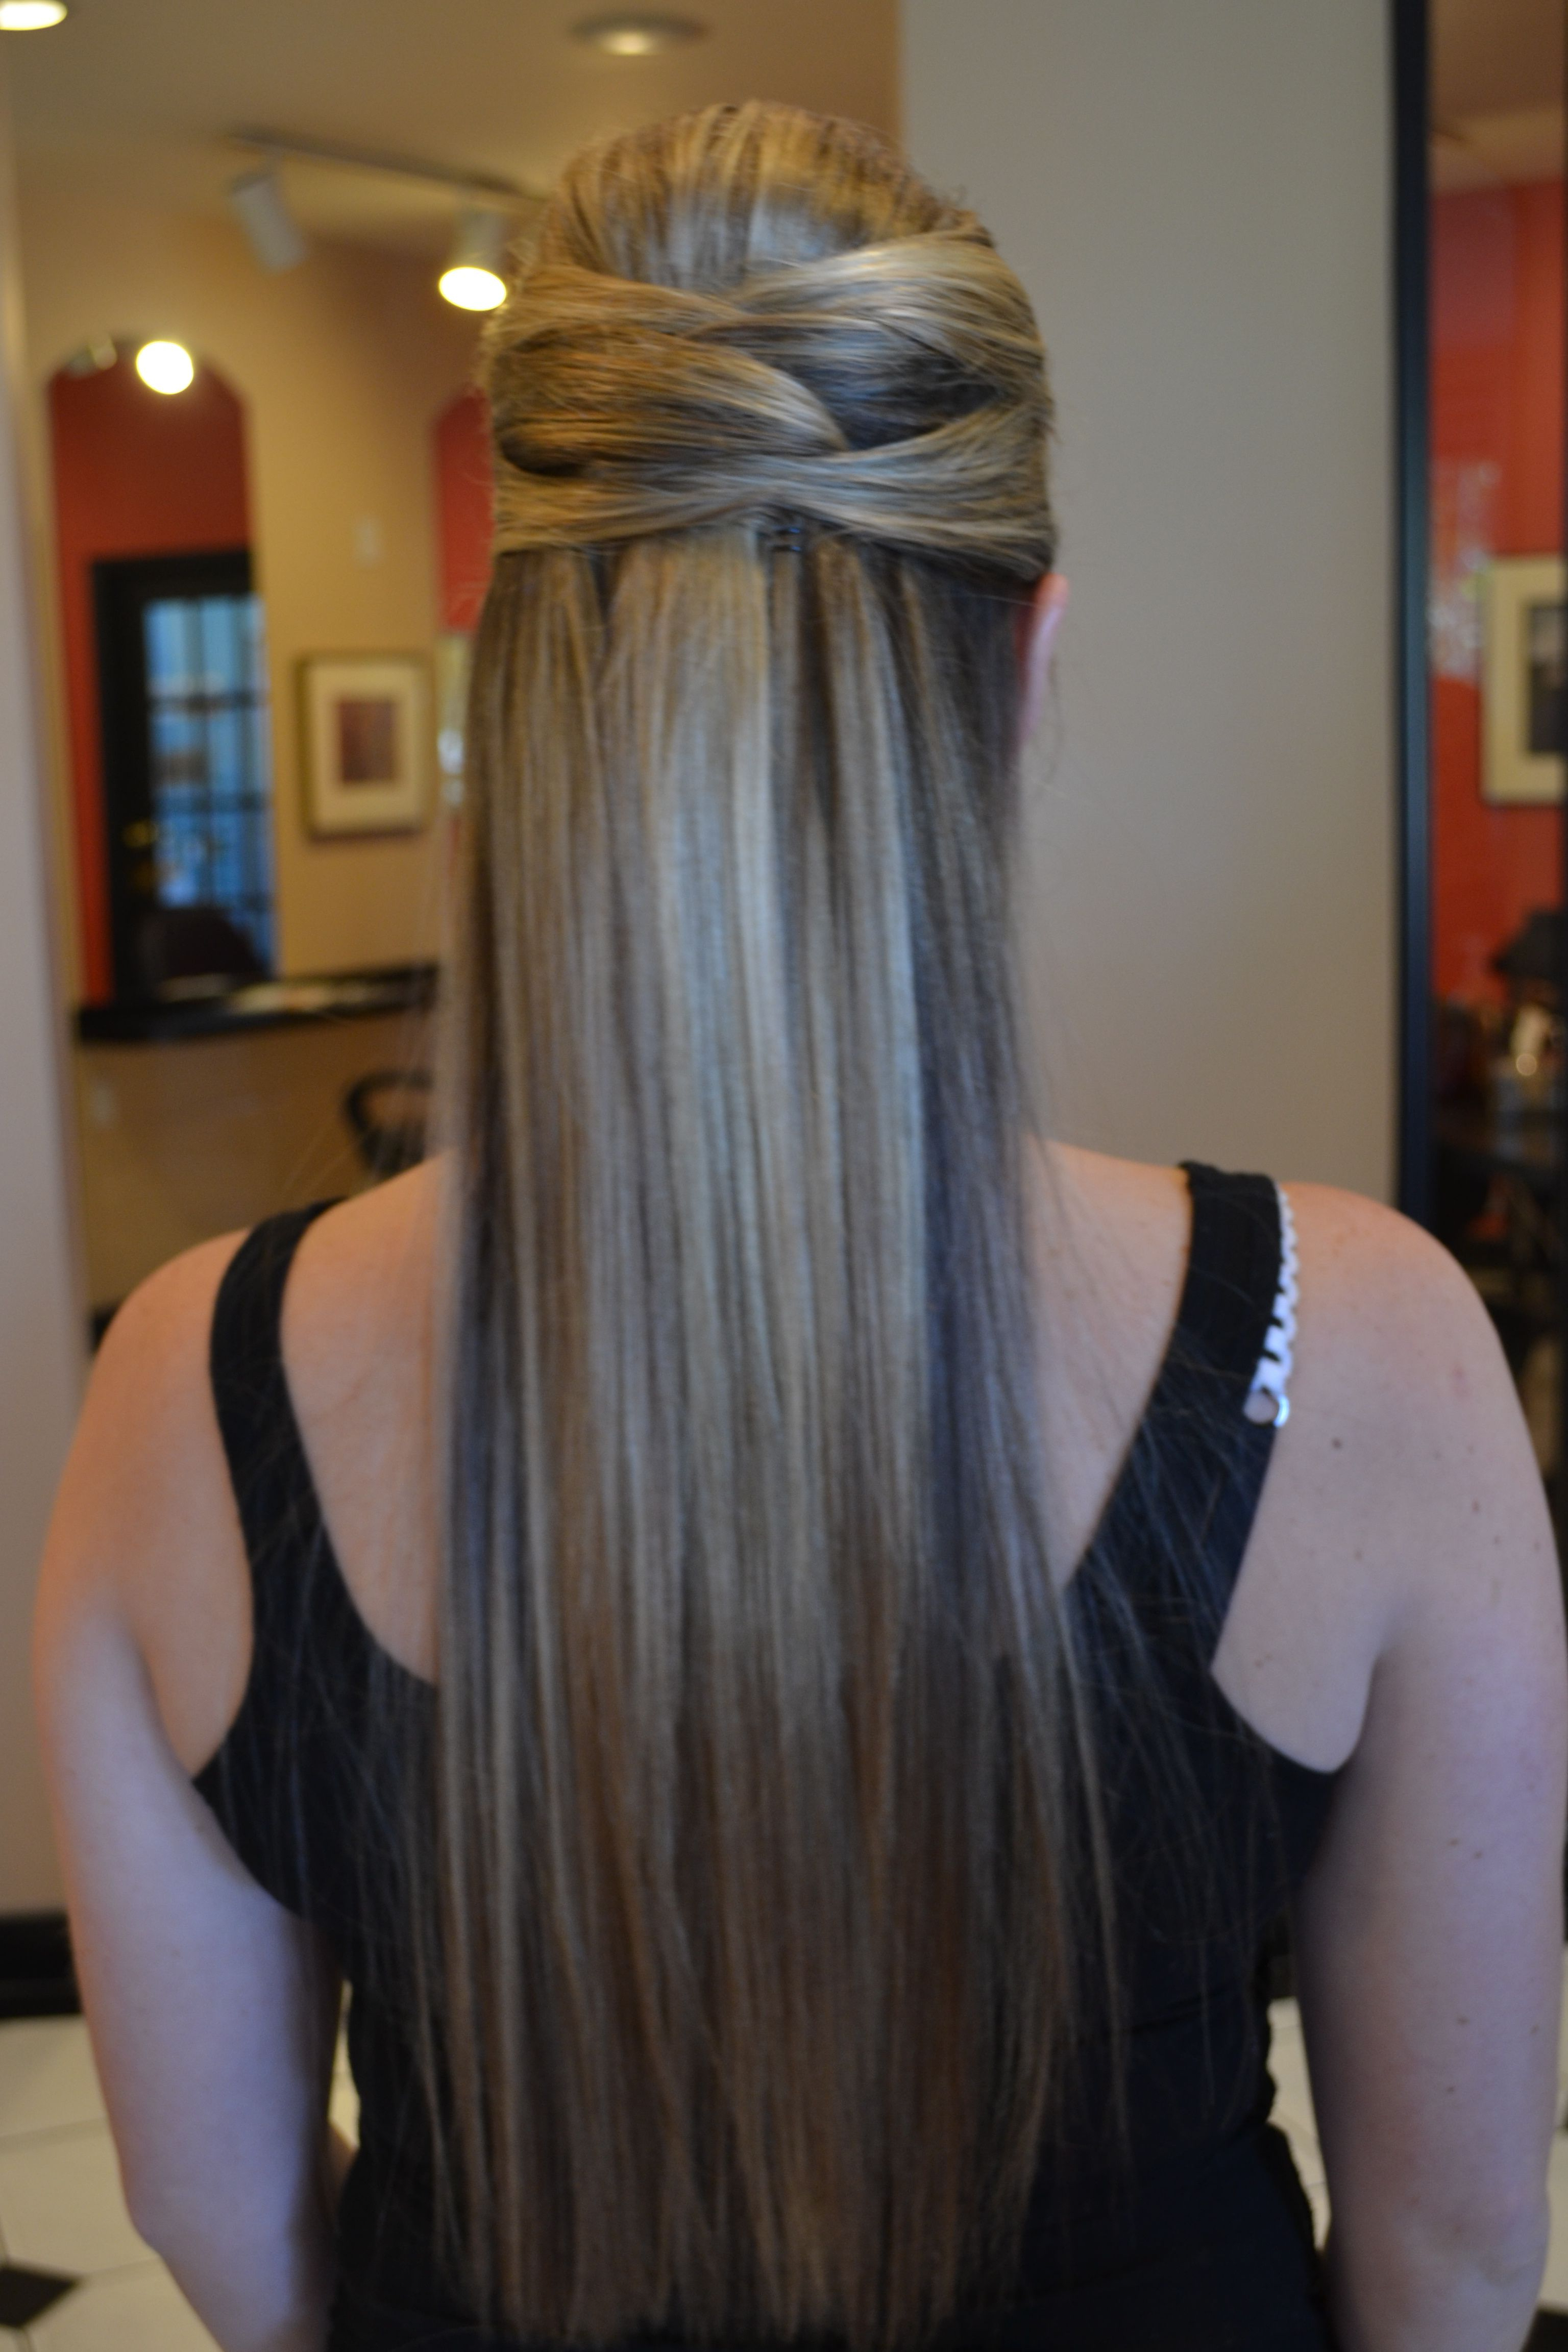 Simple Bridesmaid Hairstyle For Wedding (long, Straight Hair In Best And Newest Large Hair Rollers Bridal Hairstyles (View 15 of 20)